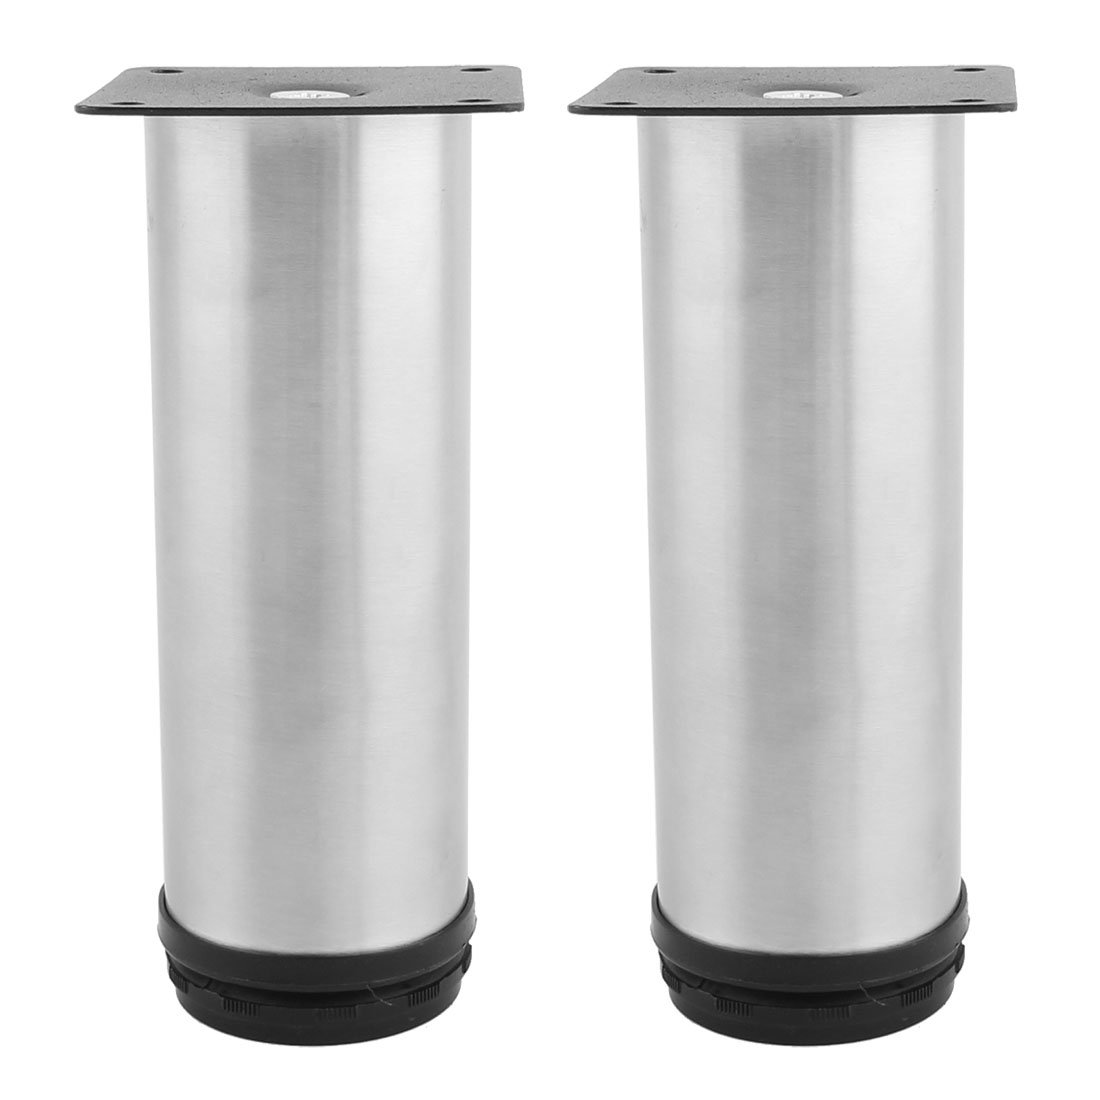 uxcell Kitchen Cabinet Cupboard Round Adjustable Furniture Leg Foot Support 150mm 2PCS Silver Tone